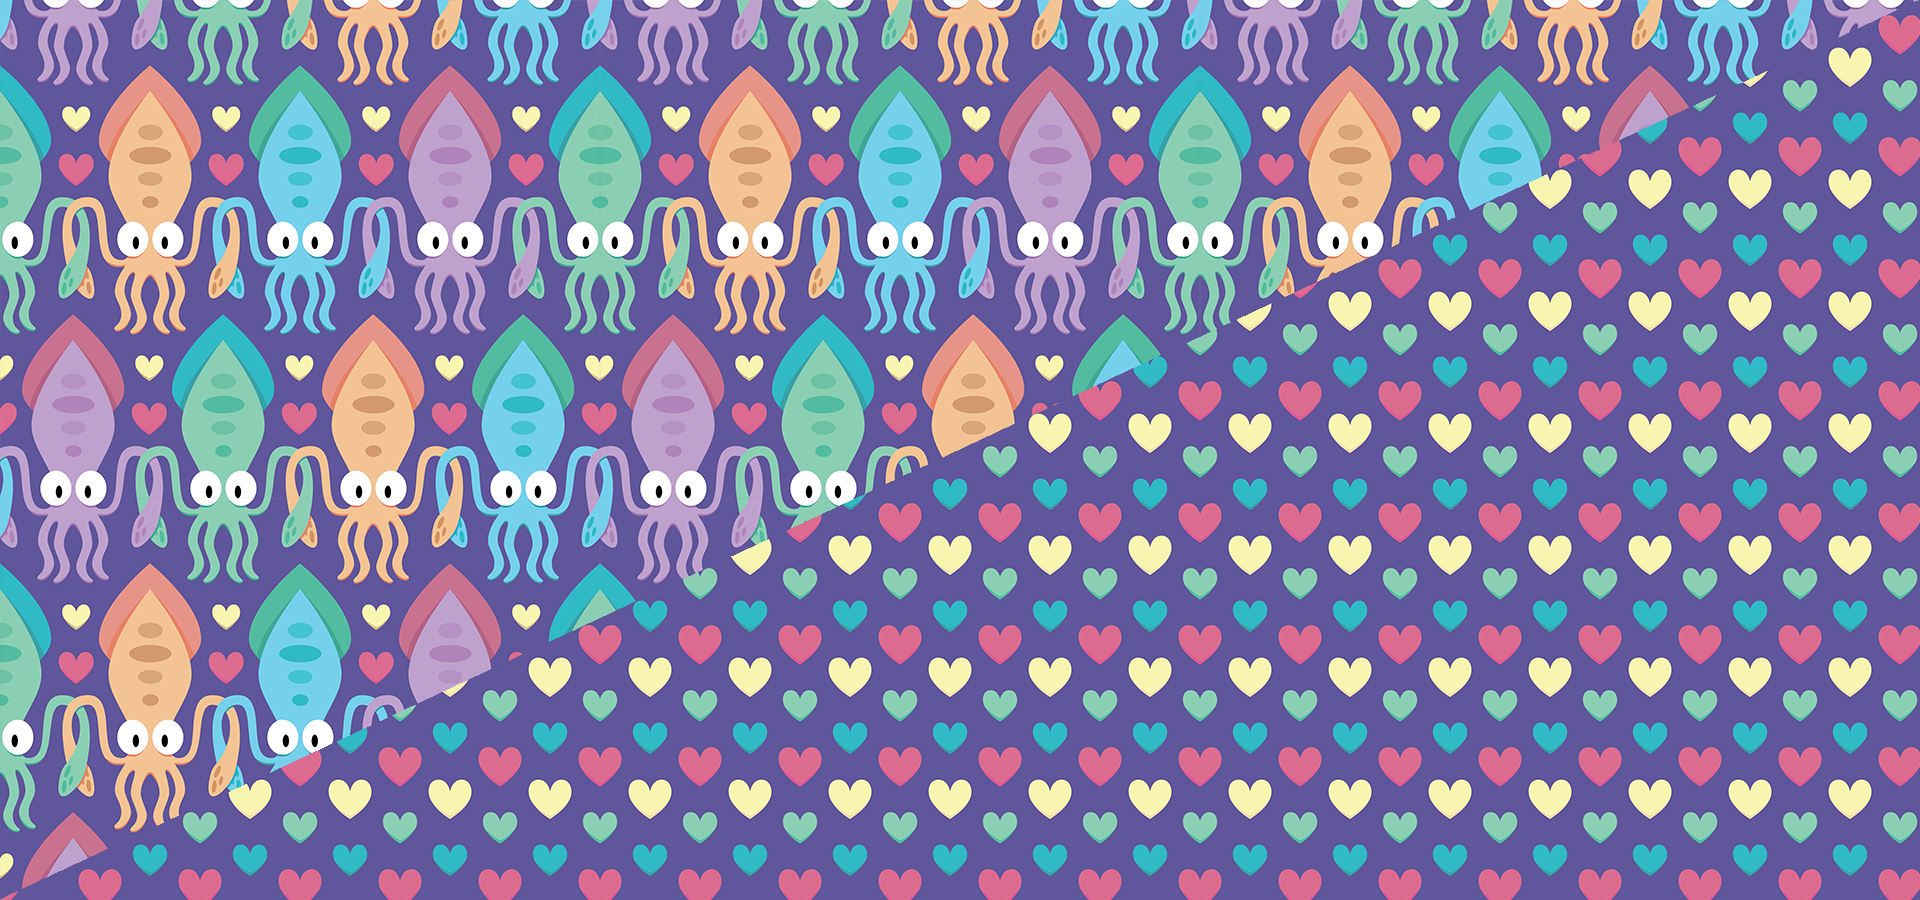 squid love pattern collection